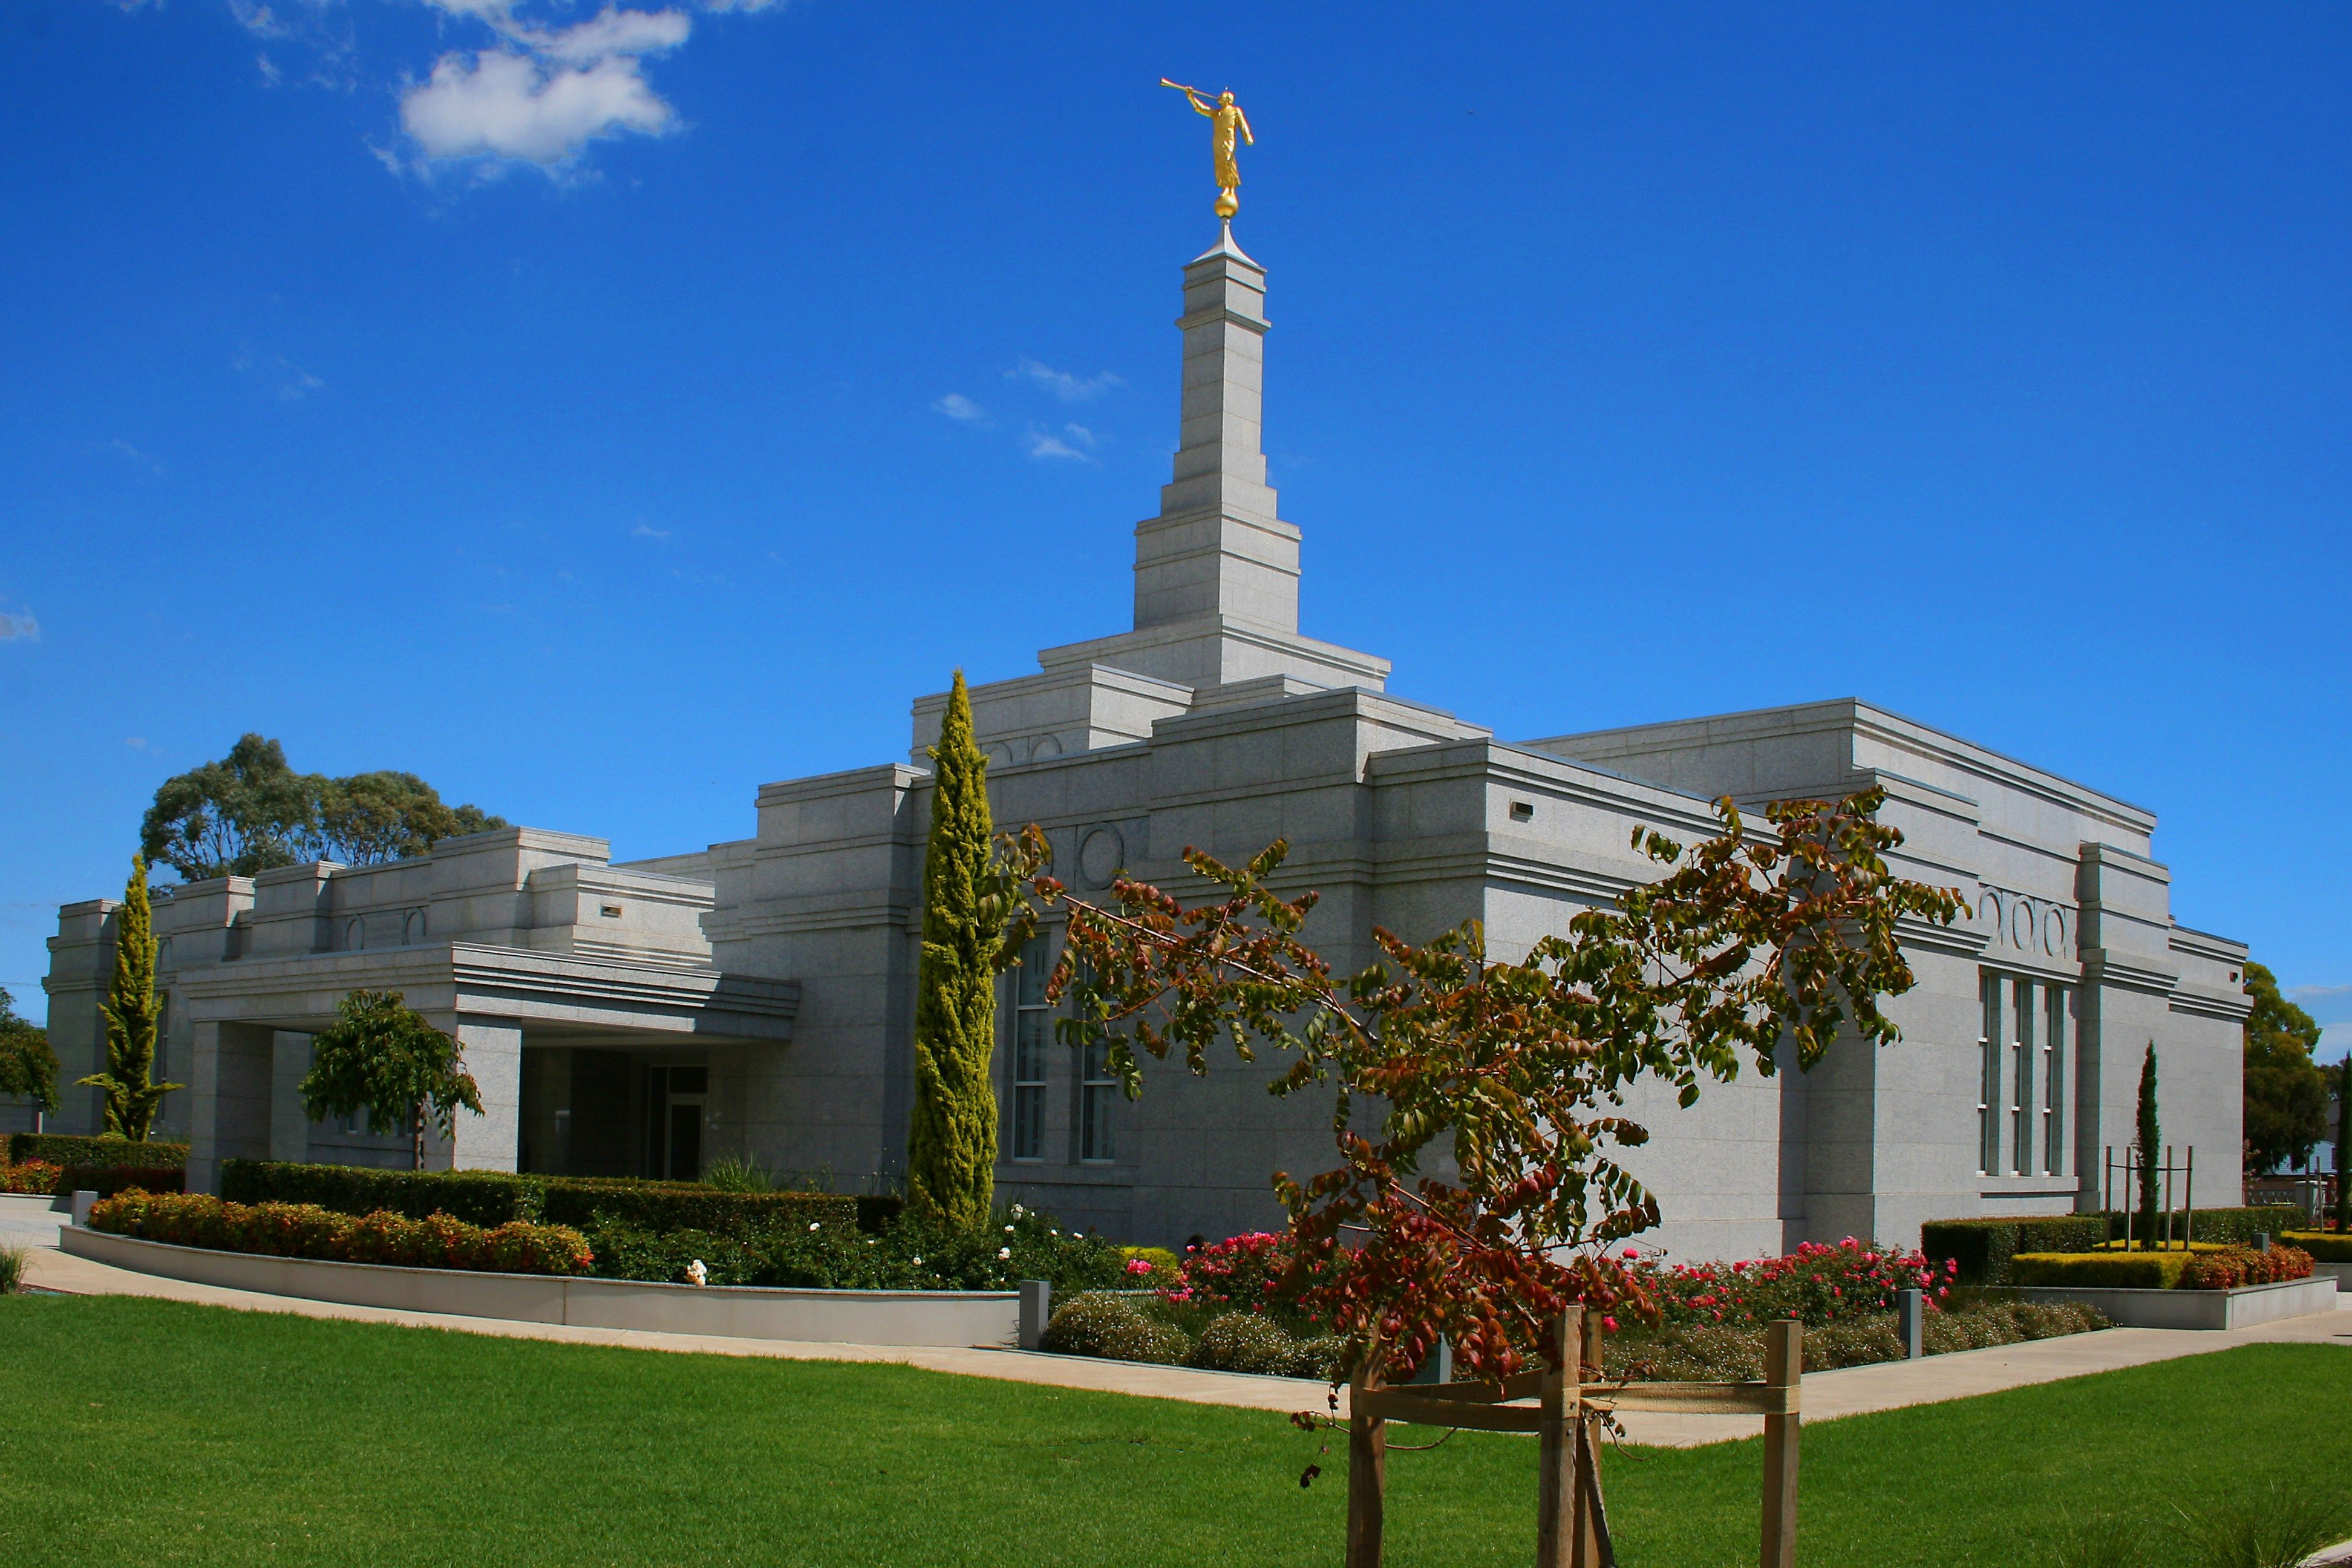 The Adelaide Australia Temple in the daytime.